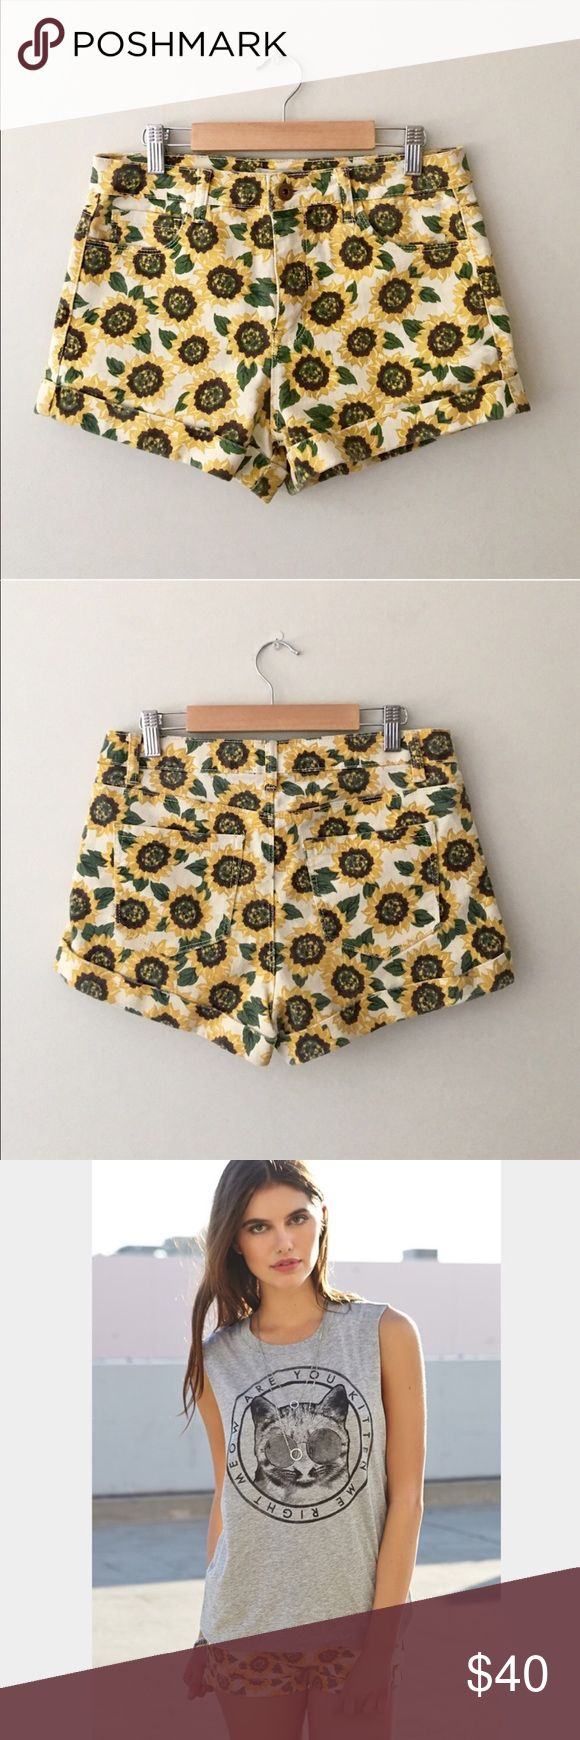 Forever 21 Sunflower Print Cuffed Denim Shorts Beautiful Cuffed Denim shorts in sunflower print by Forever 21. Size Small. Excellent condition. Forever 21 Shorts